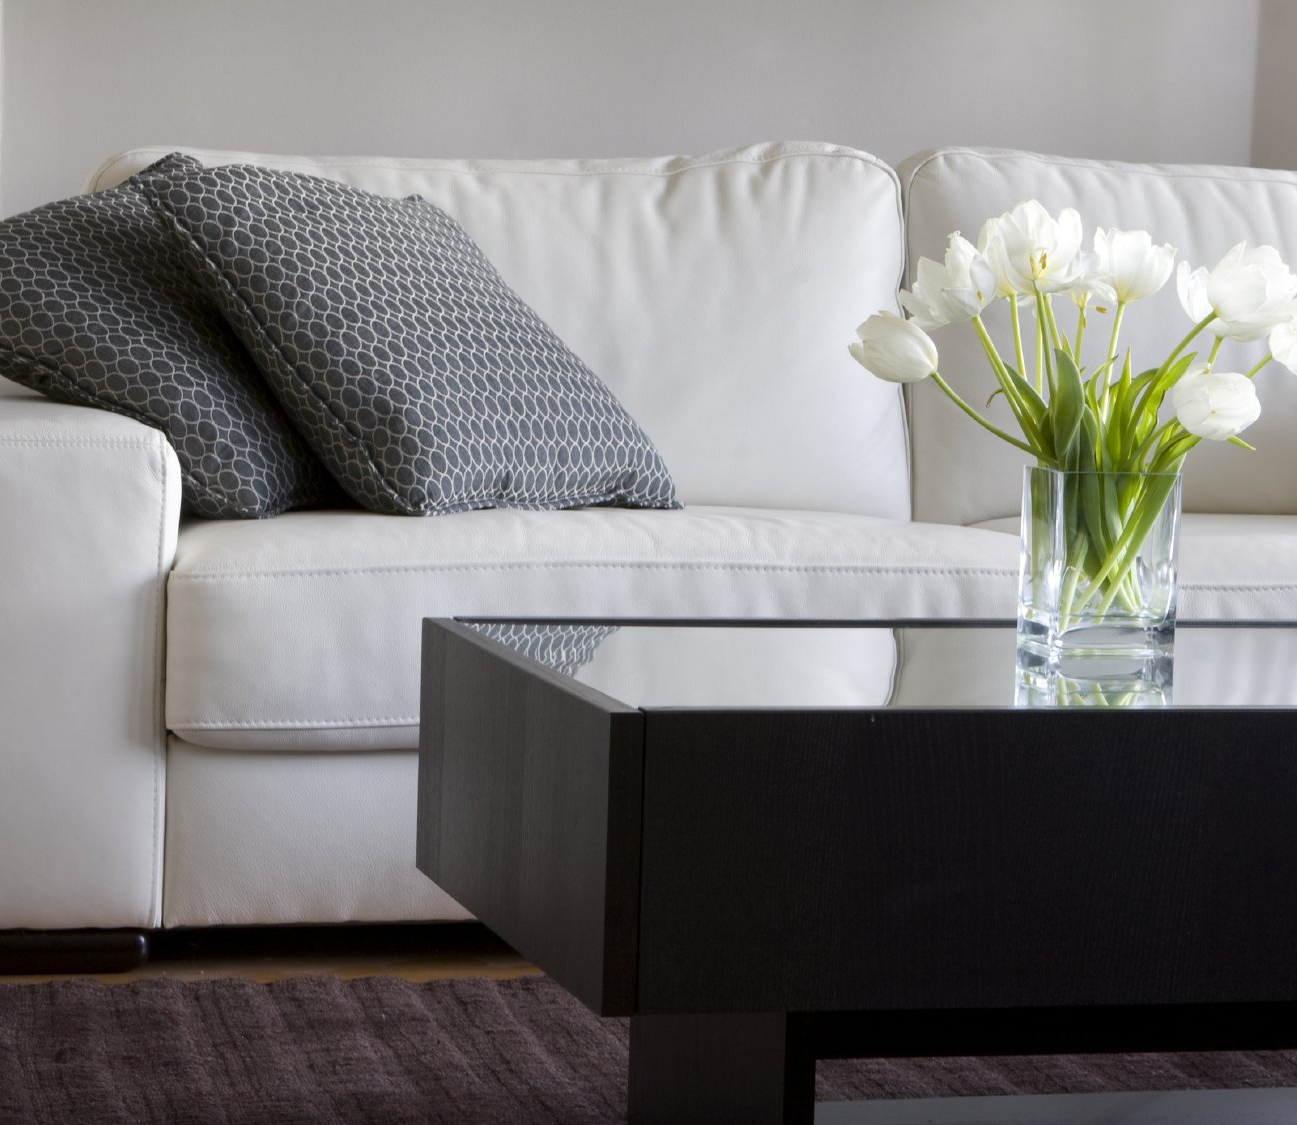 Better Than New Used Furniture Decor Home Accessories